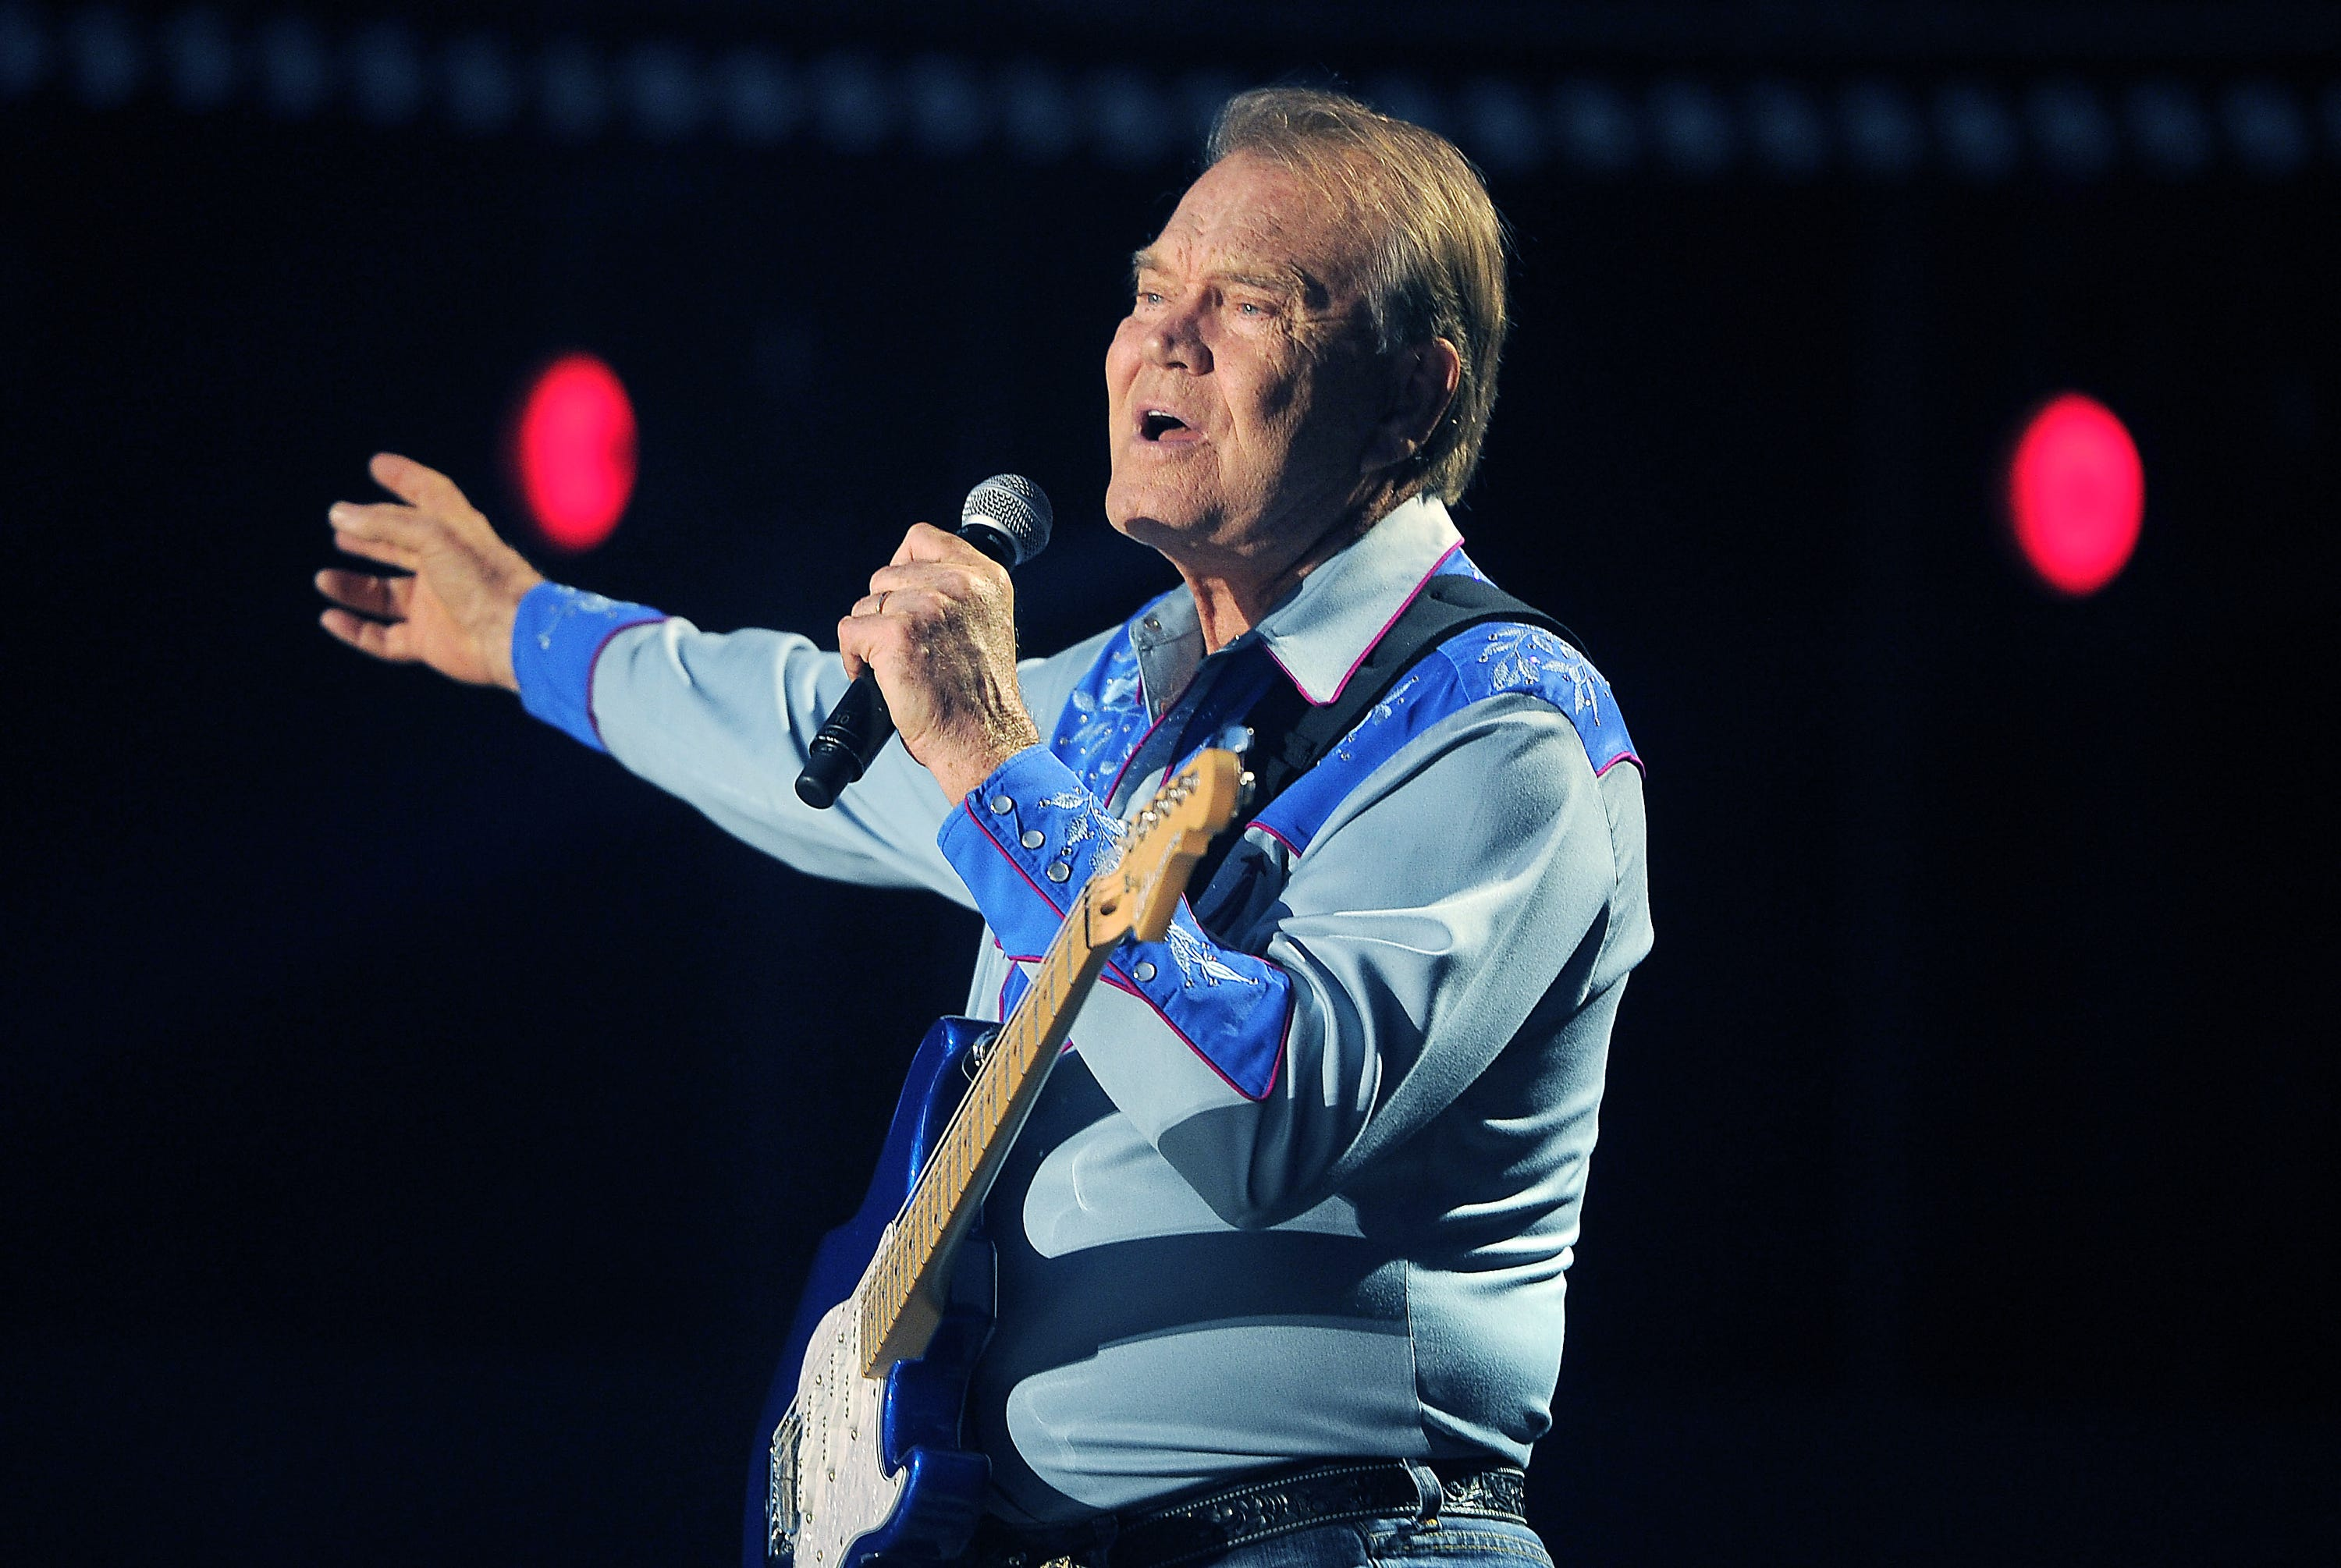 Glen Campbell s widow defends $200,000 in legal fees to settle estate dispute